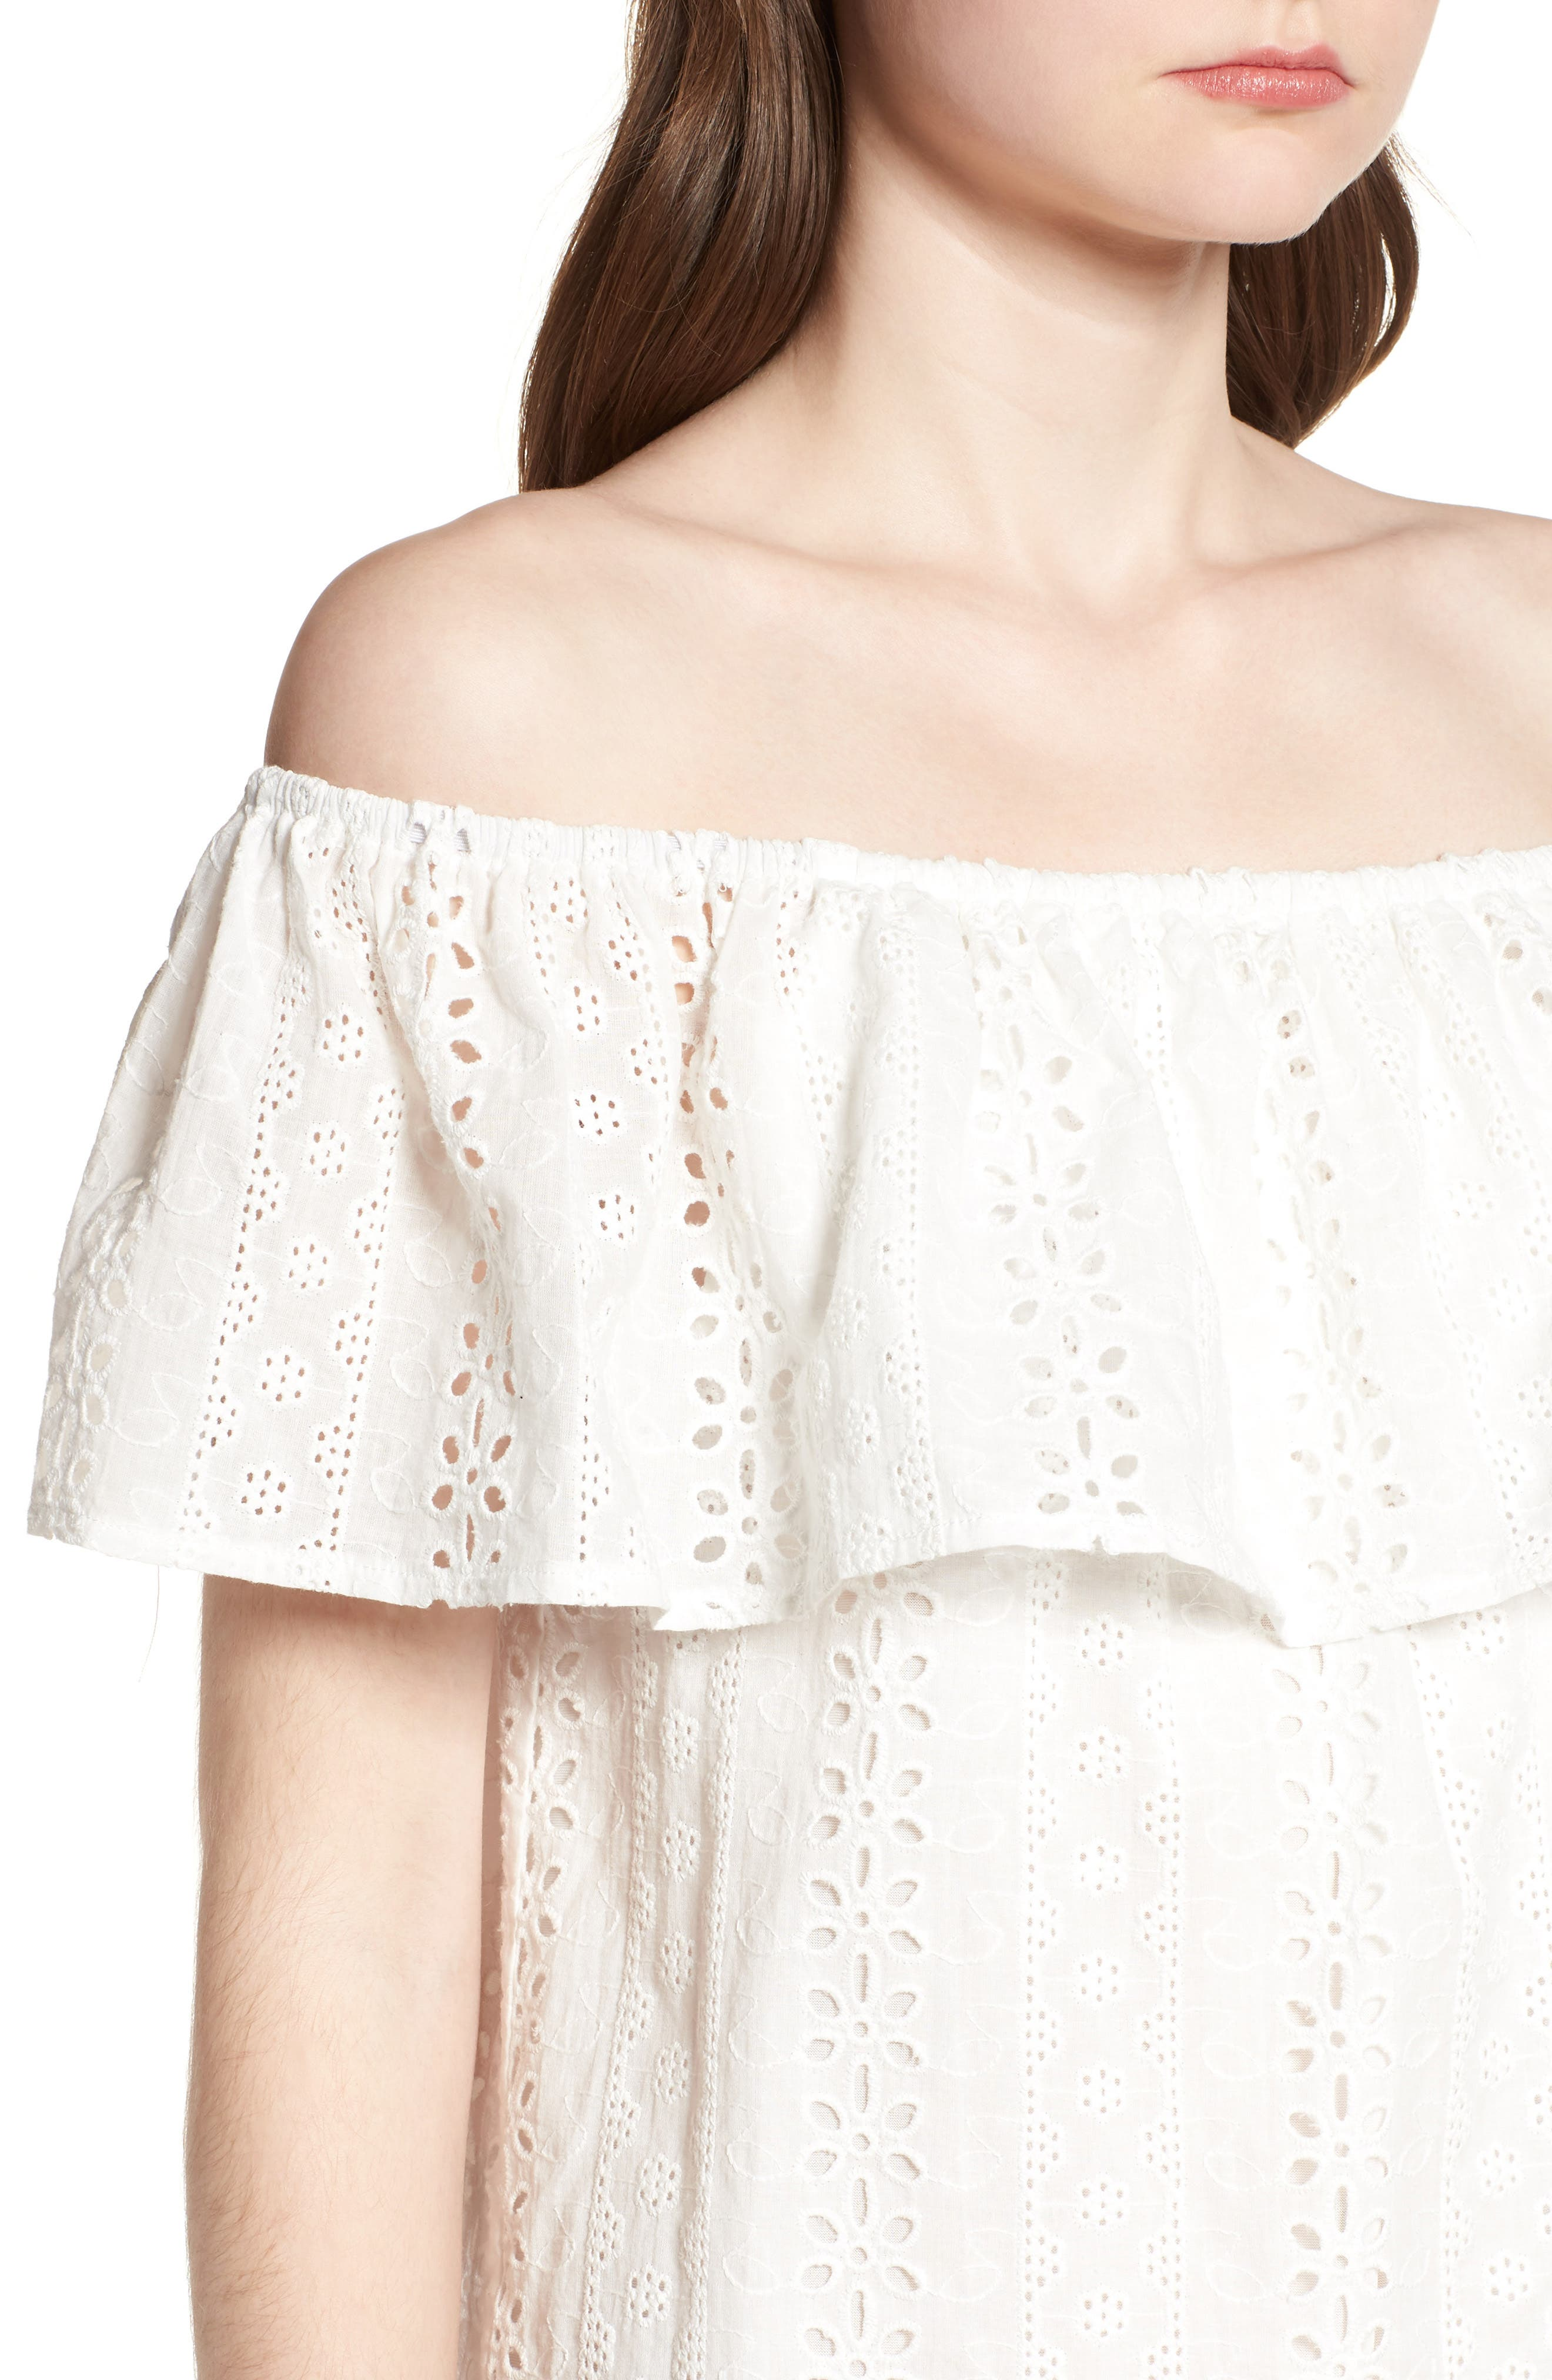 Bishop + Young Eyelet Ruffle Off the Shoulder Dress,                             Alternate thumbnail 4, color,                             White